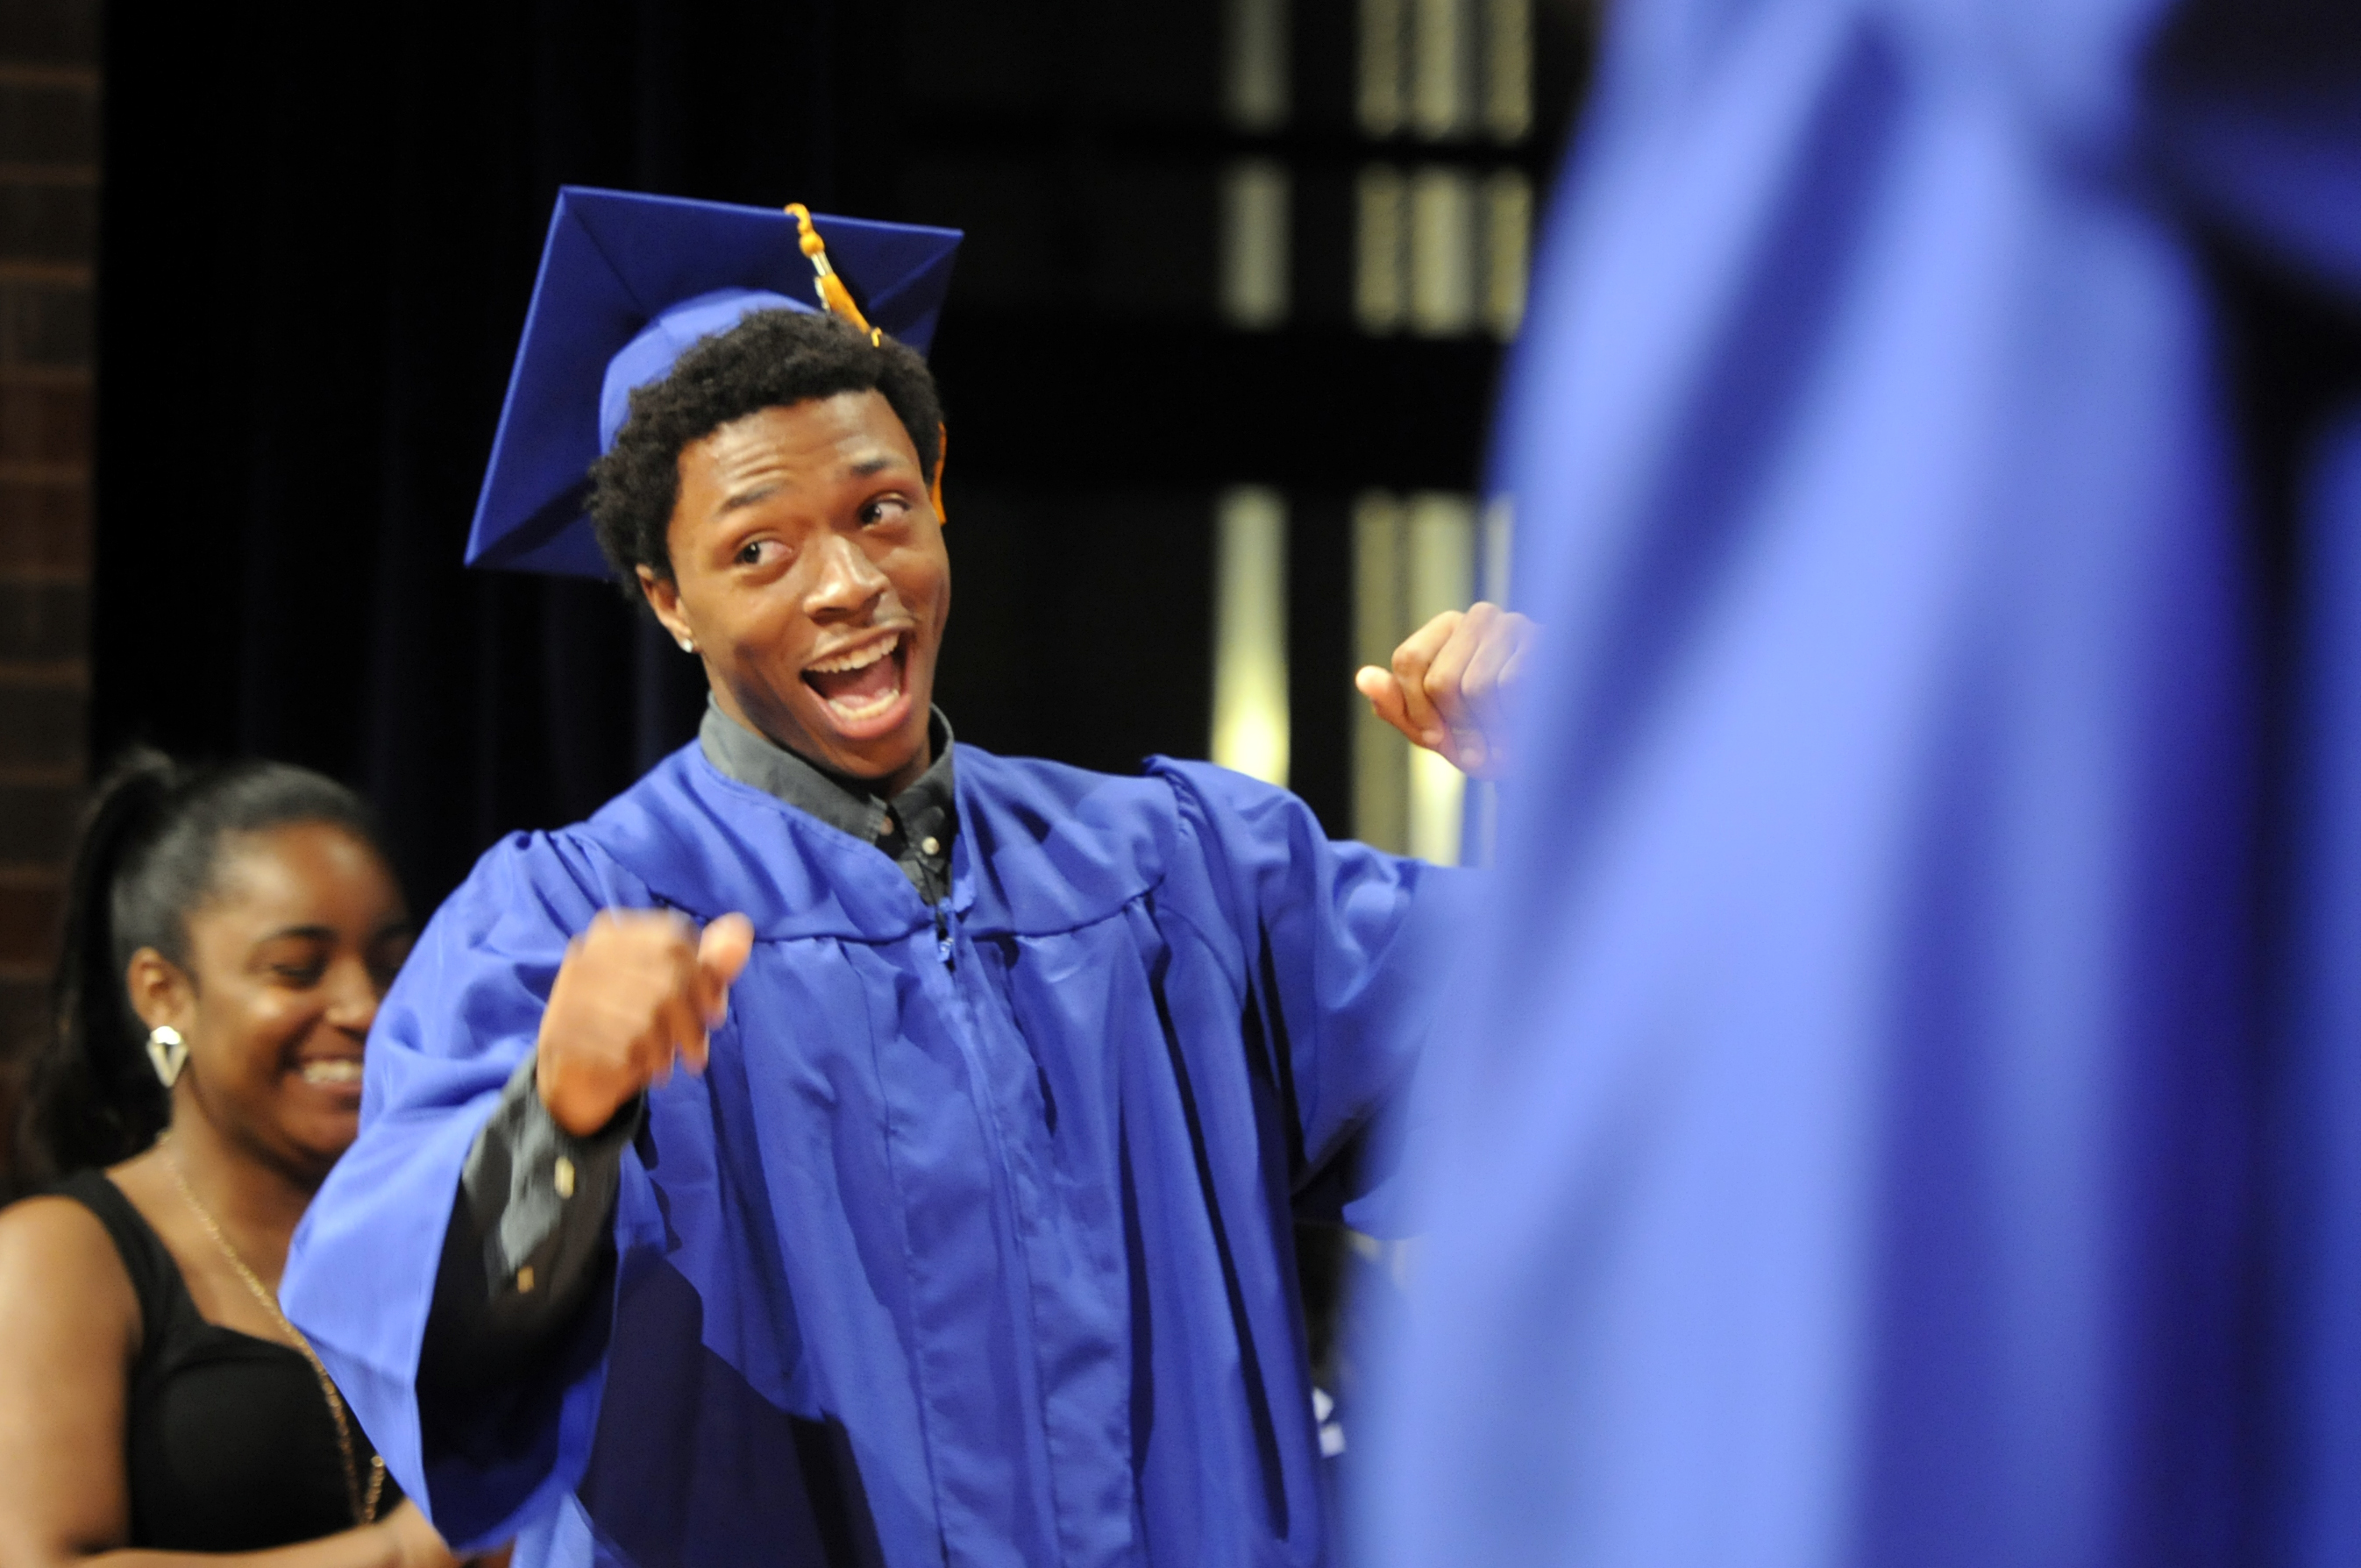 Avaughn Brown reacts to his name being called as he walked to receive his degree.